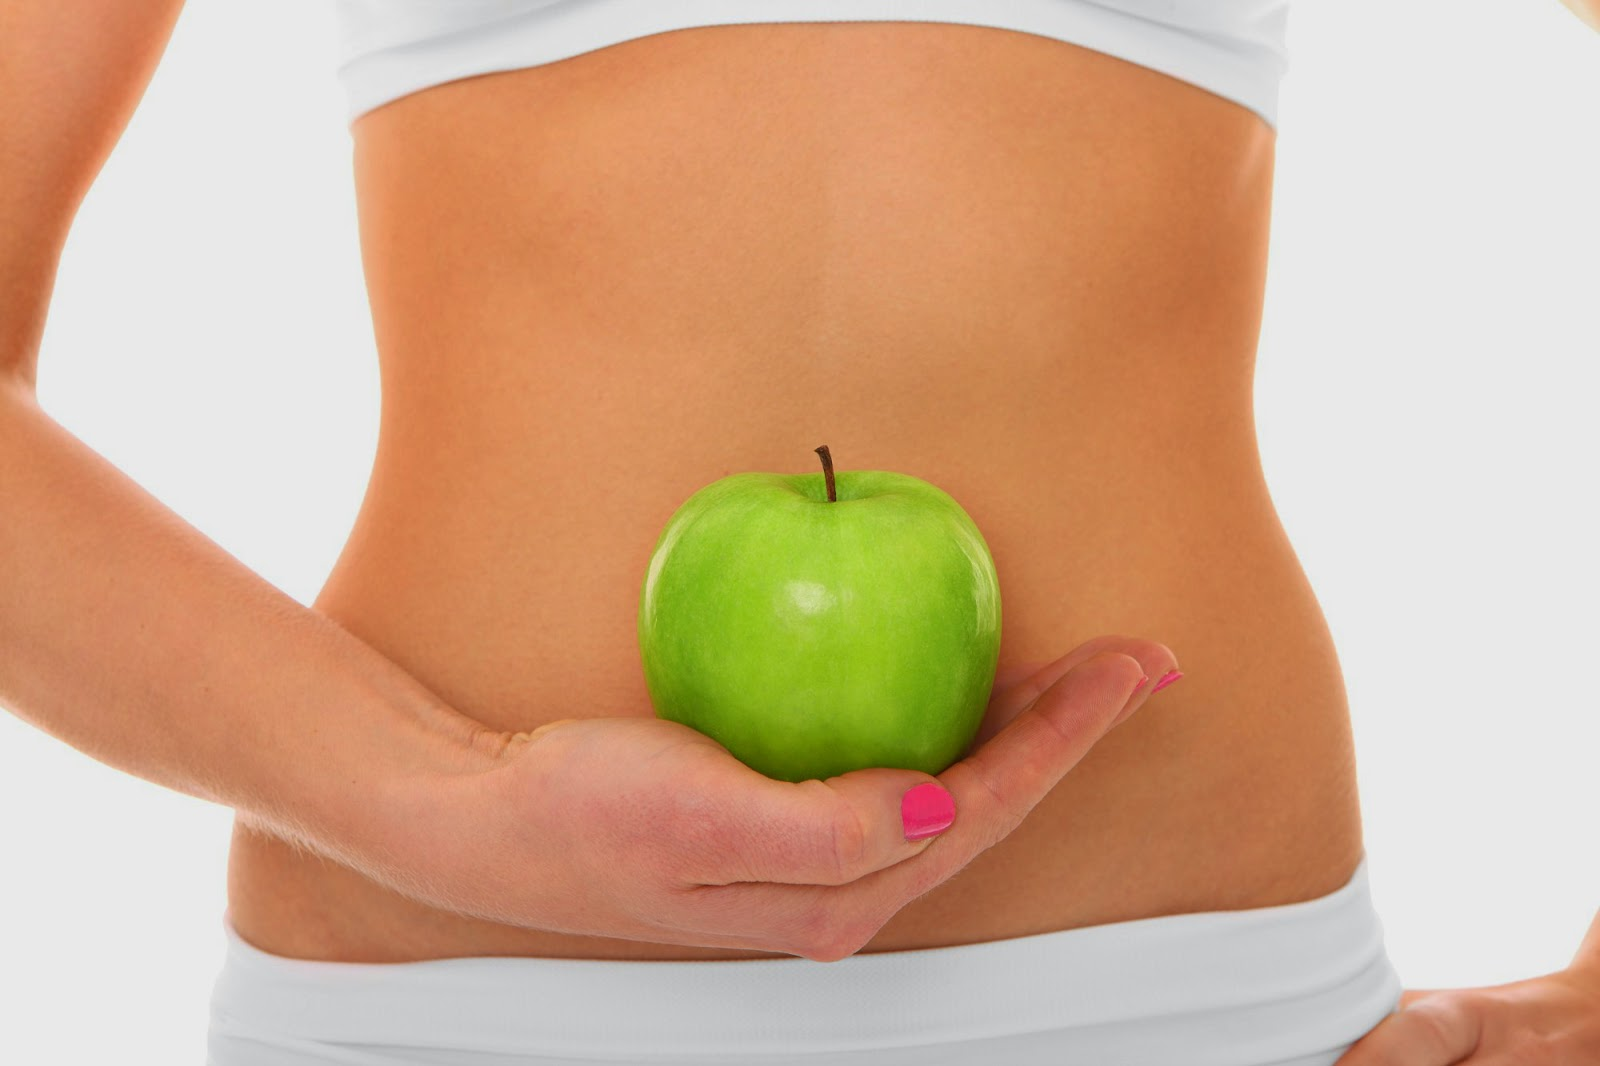 secret to have a flat stomach, flat, stomach, healthy diet, diet, healthy food, food, green apple